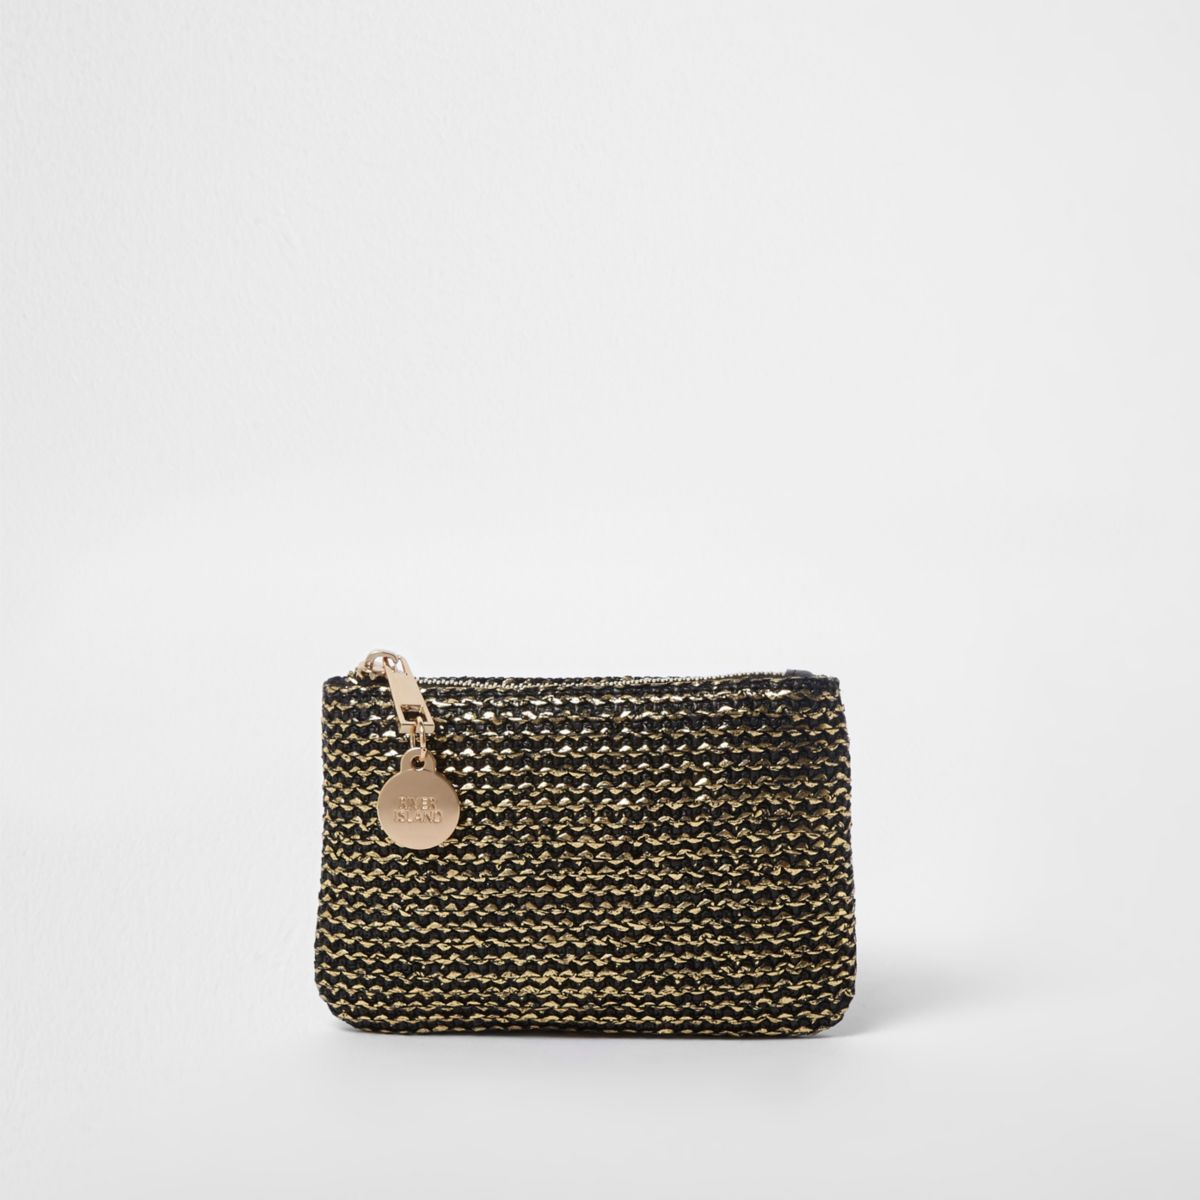 Gold metallic woven pouch purse